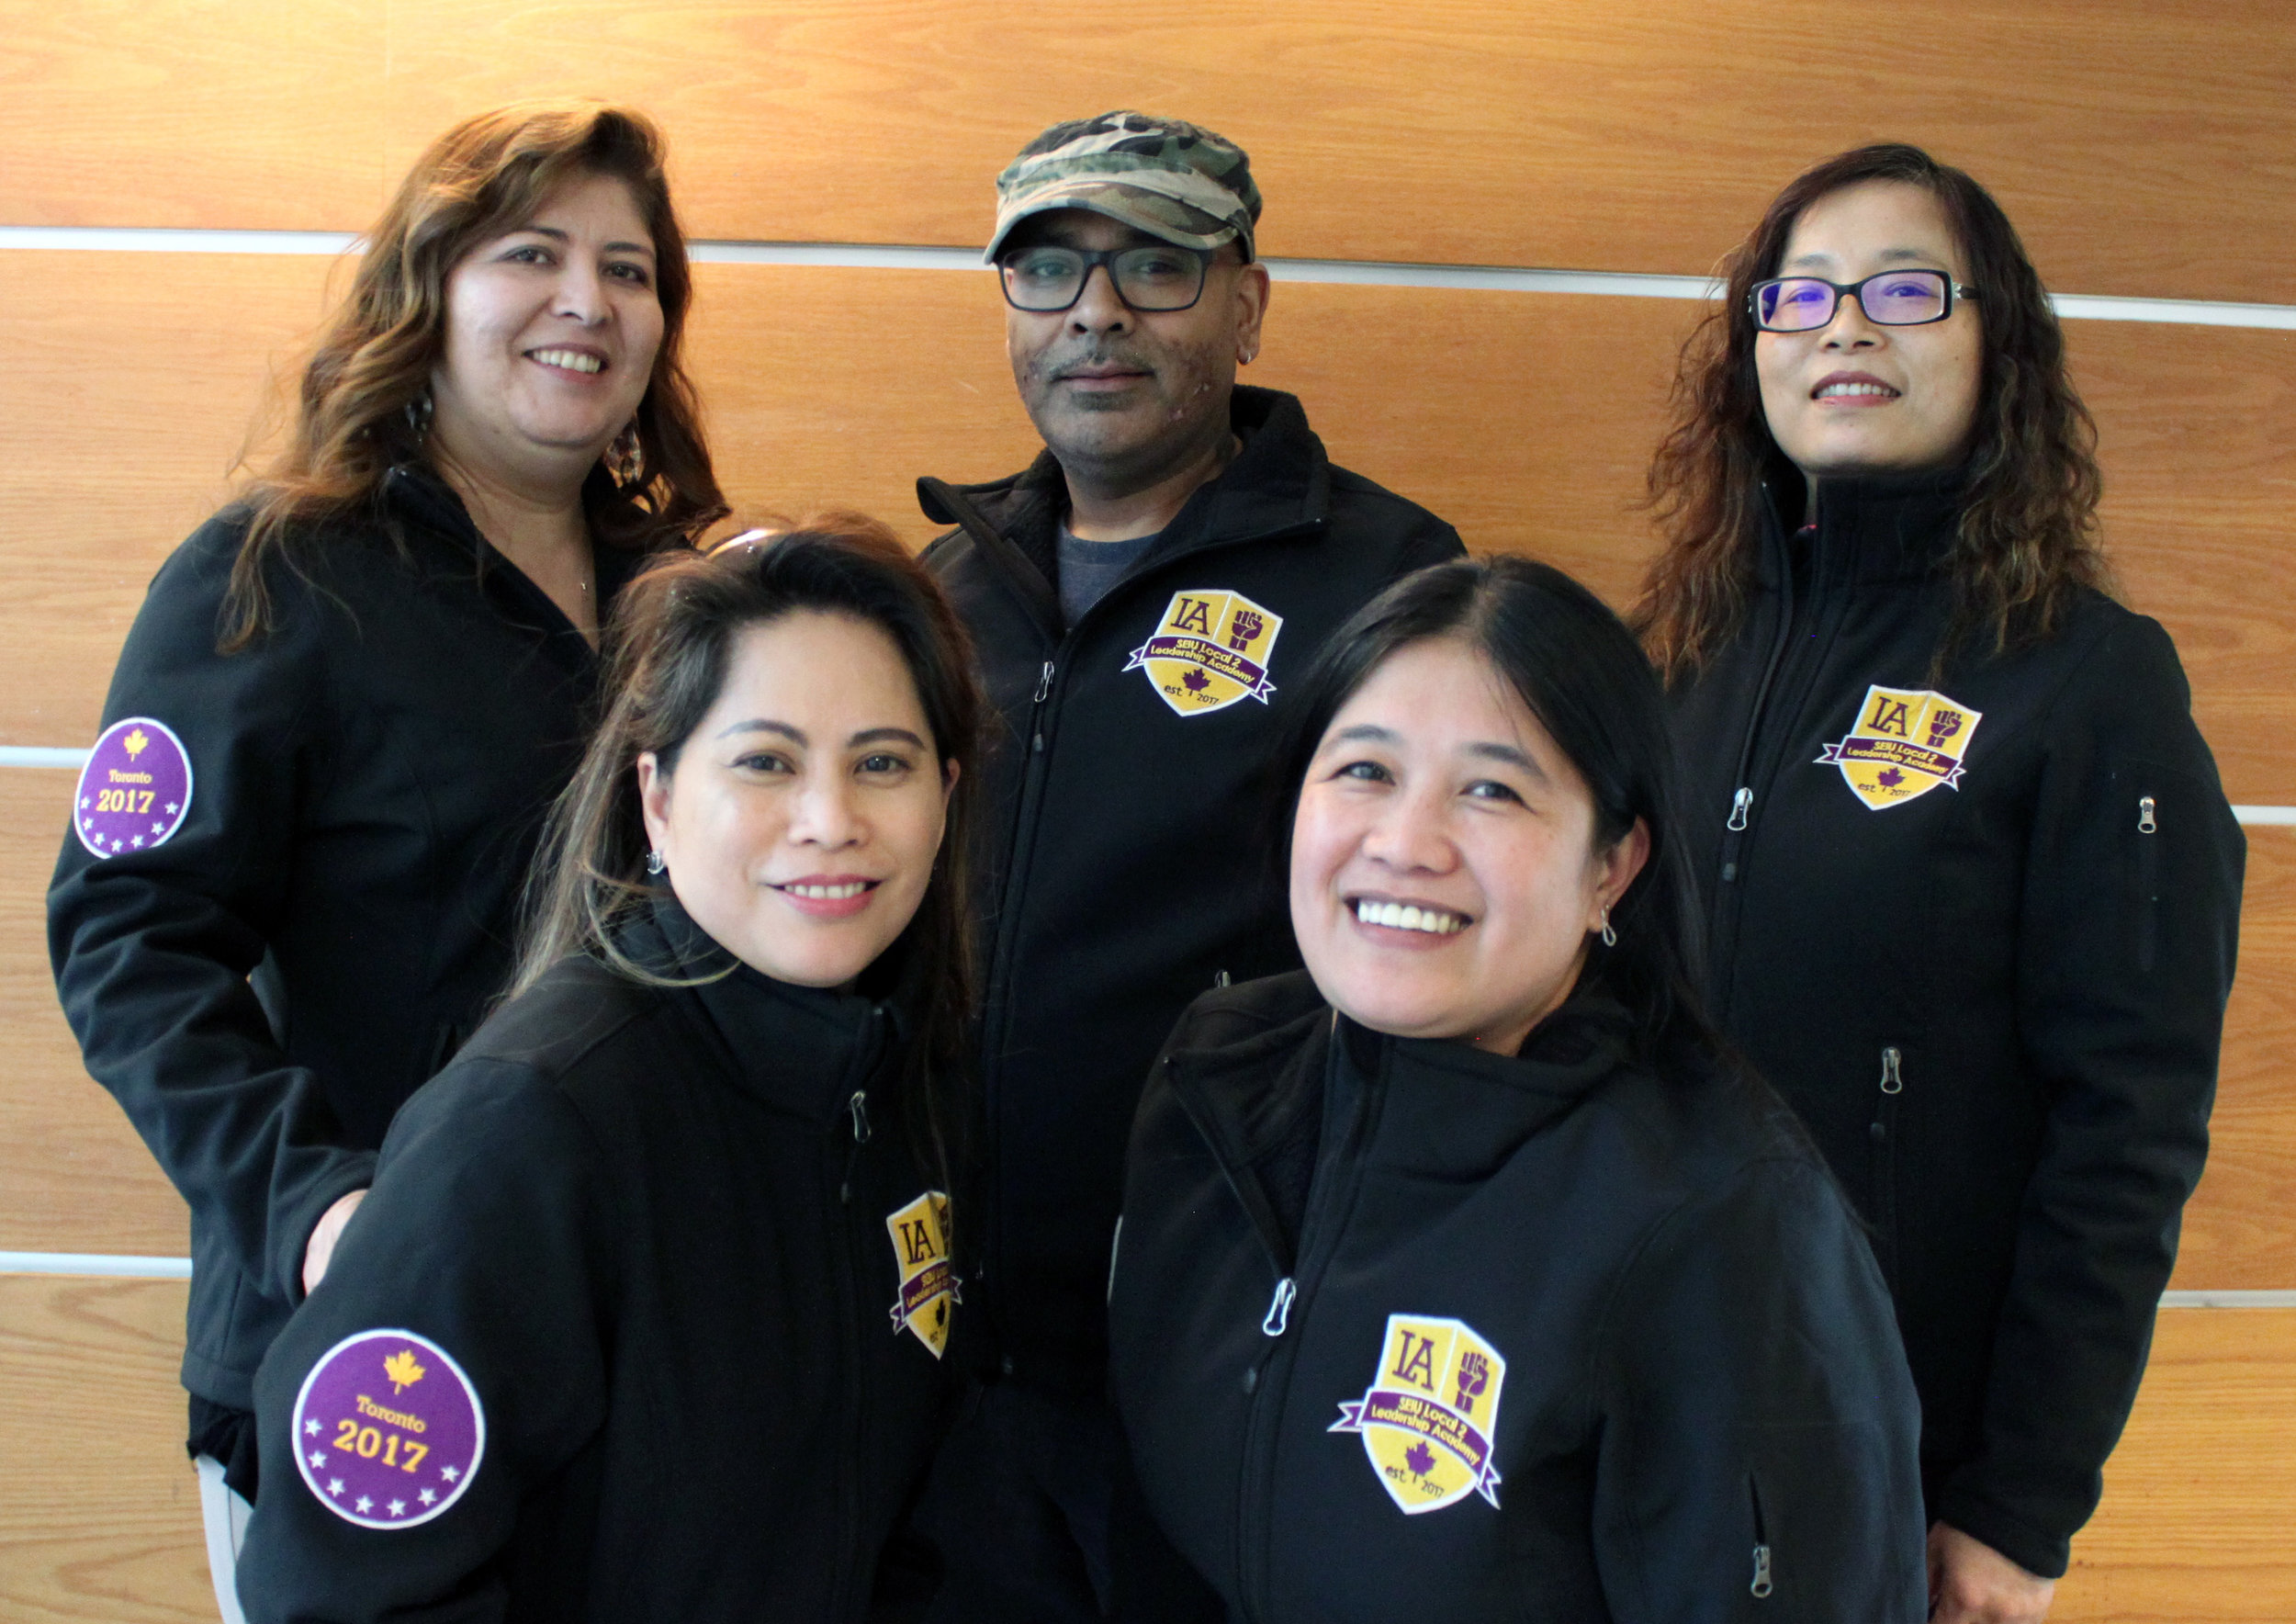 Toronto Area Leadership Academy graduates show off their new jackets.